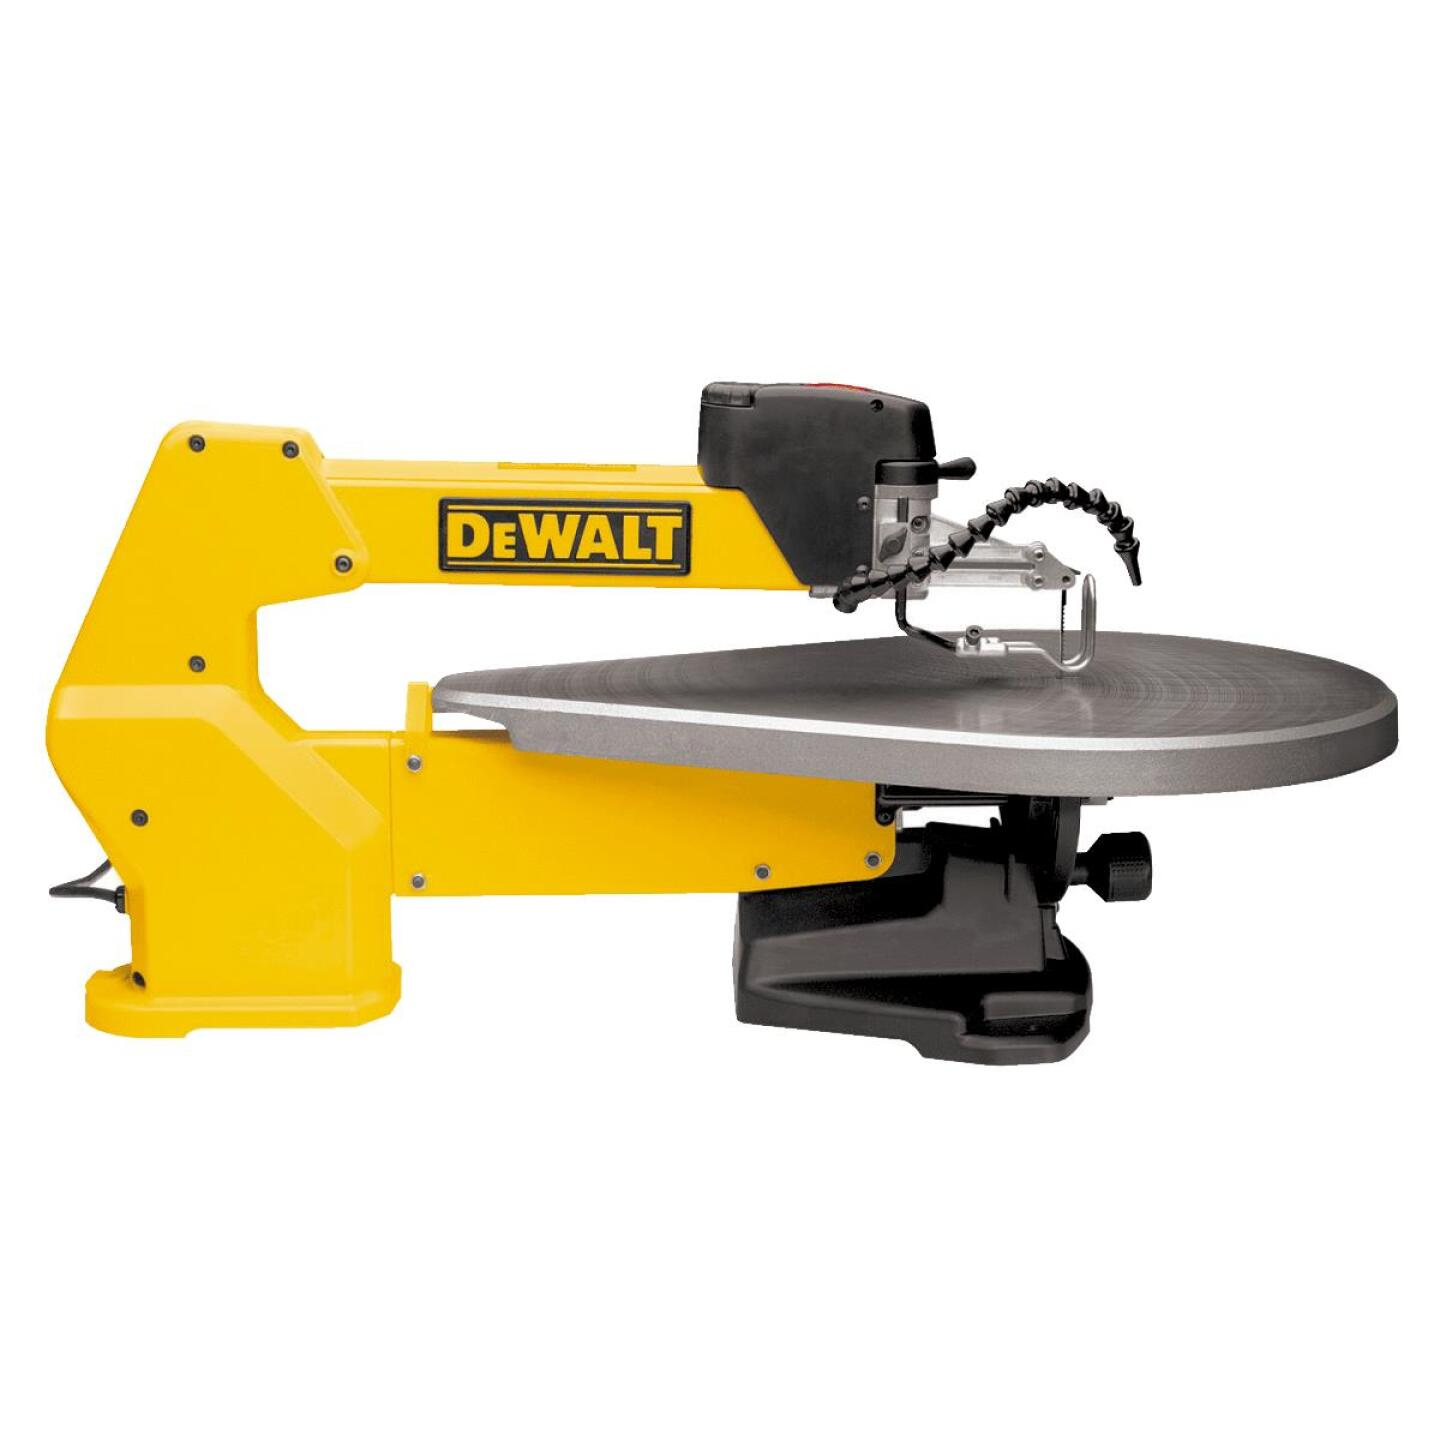 DeWalt 20 In. Scroll Saw Image 1